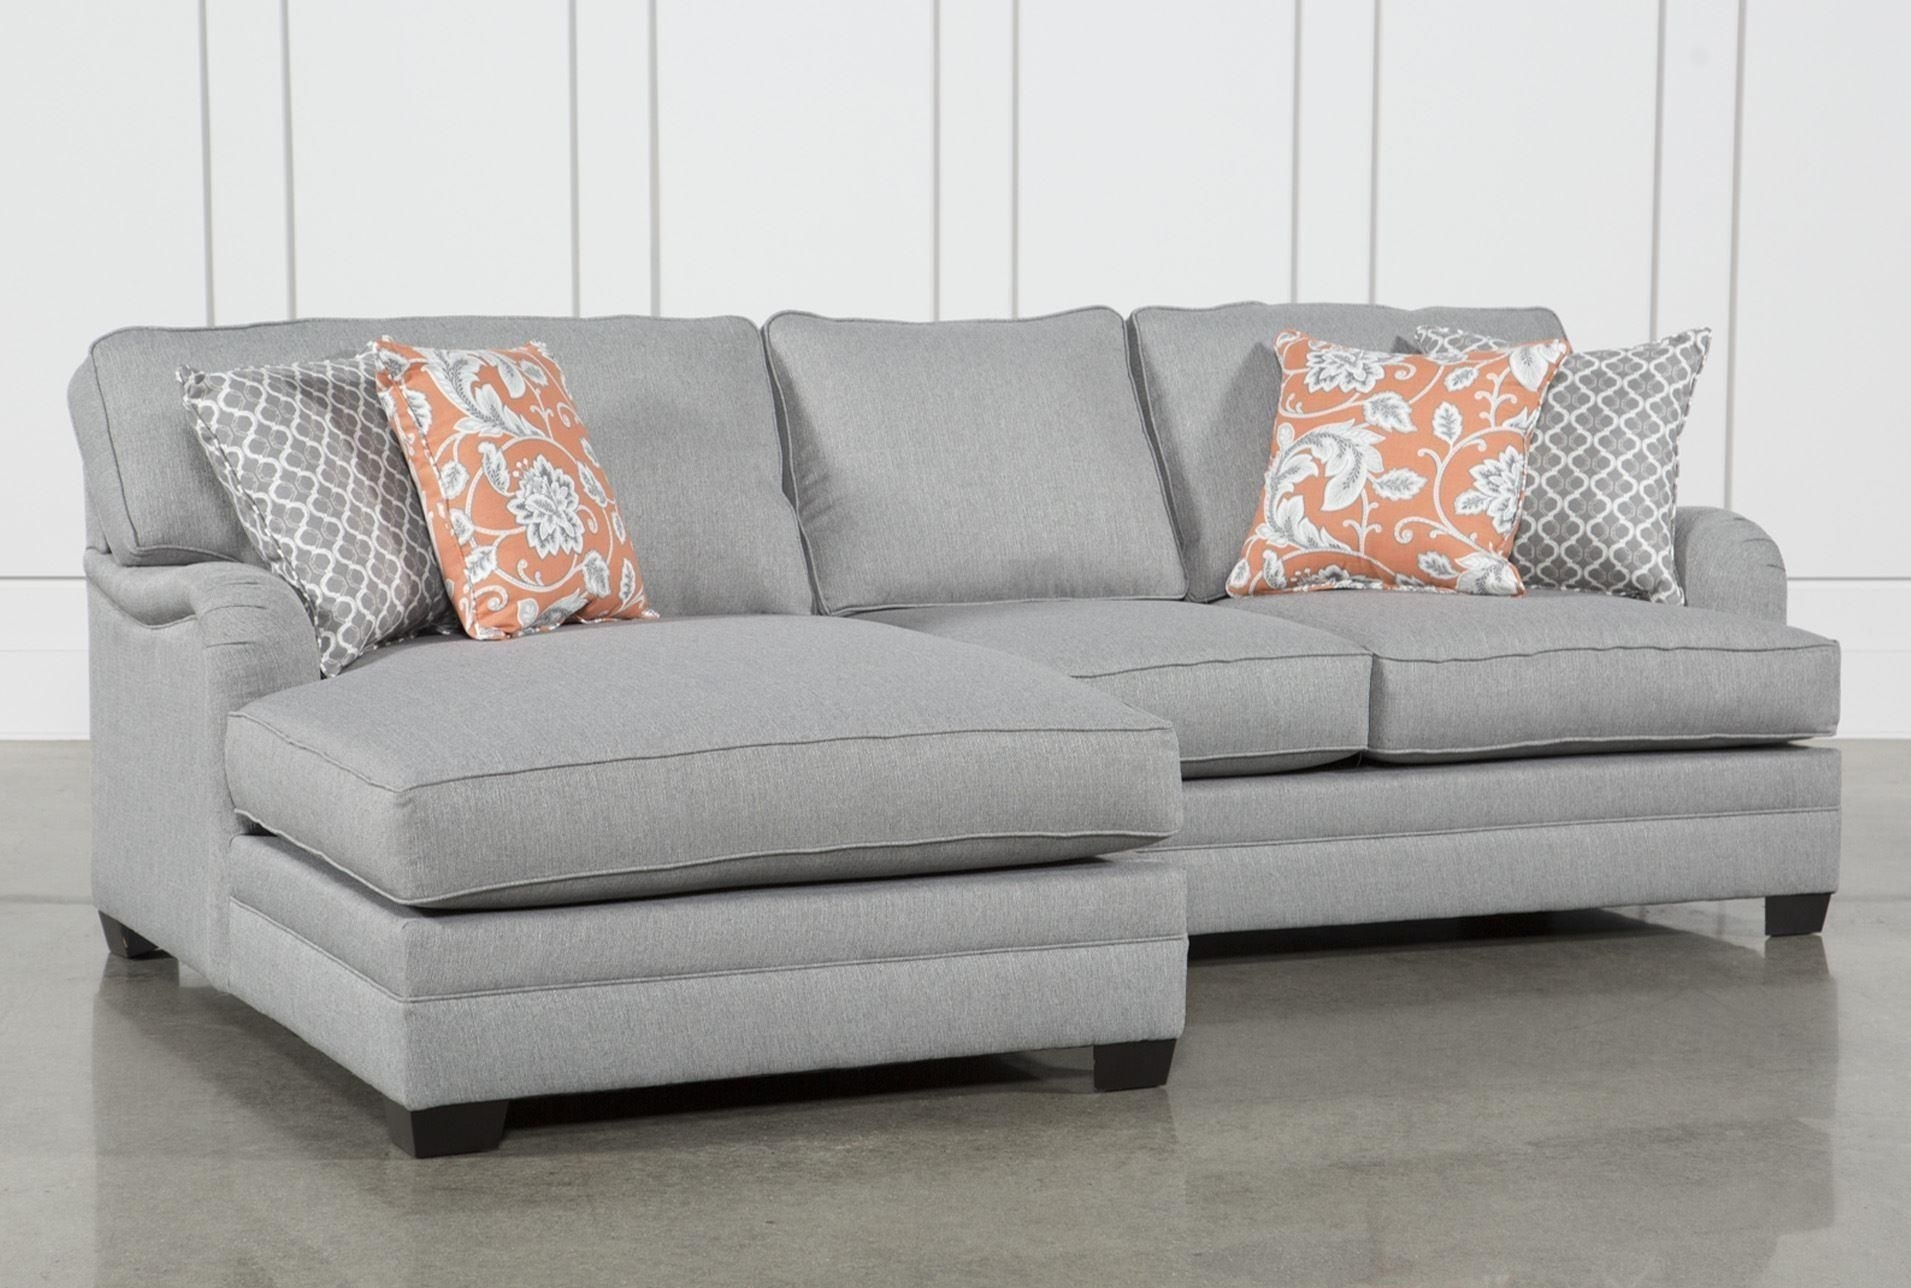 Marissa 2 Piece Sectional W/laf Chaise, Grey, Sofas In Mcculla Sofa Sectionals With Reversible Chaise (View 4 of 25)